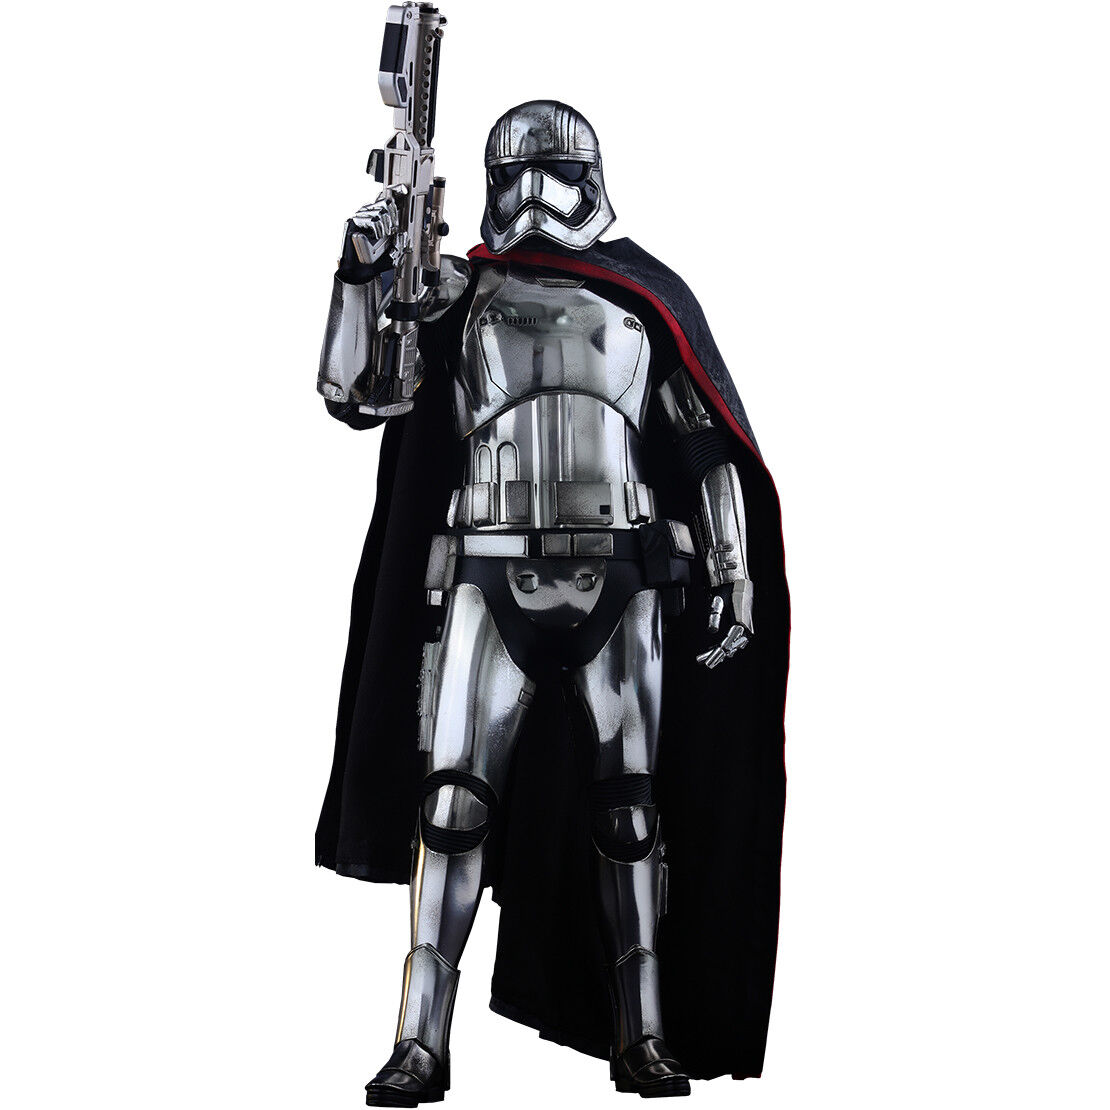 Star Wars Episode VII  The Force Awakens - Captain Phasma 1 6th Scale Hot Toys A